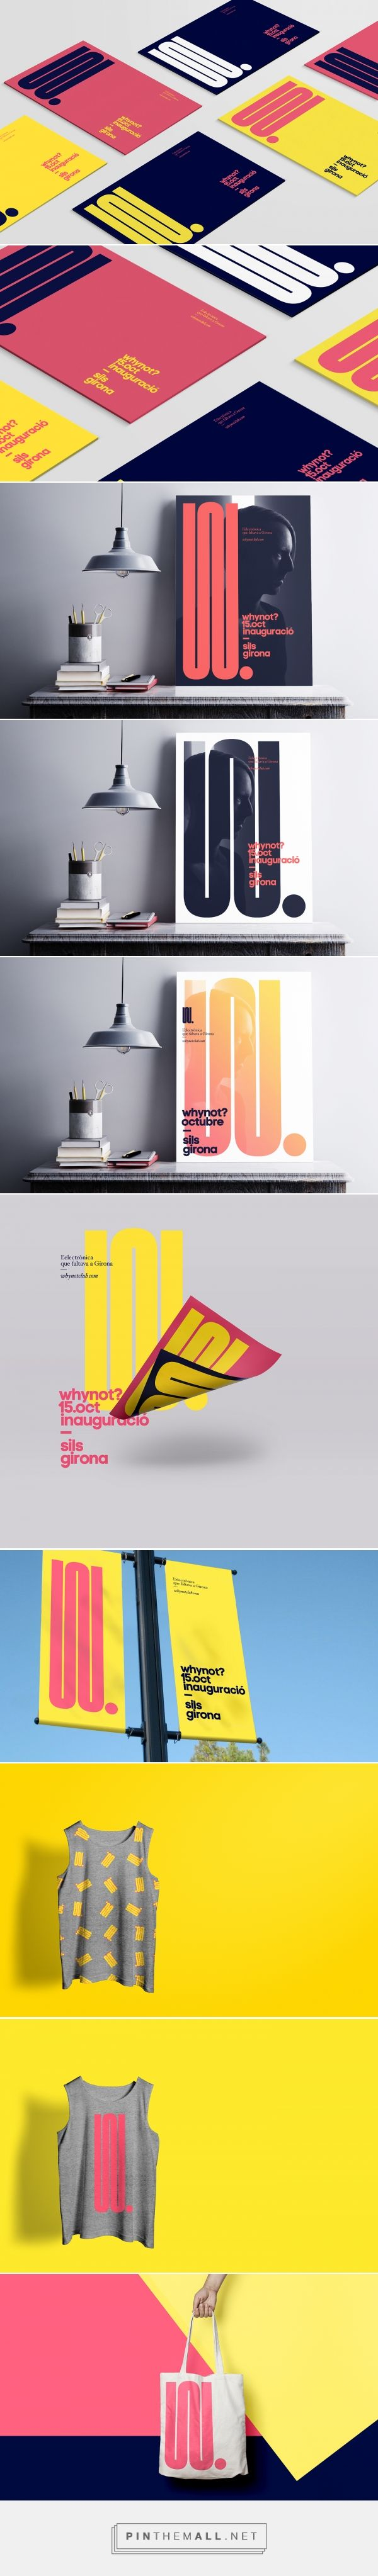 20 best Branding & Visual Identity images on Pinterest